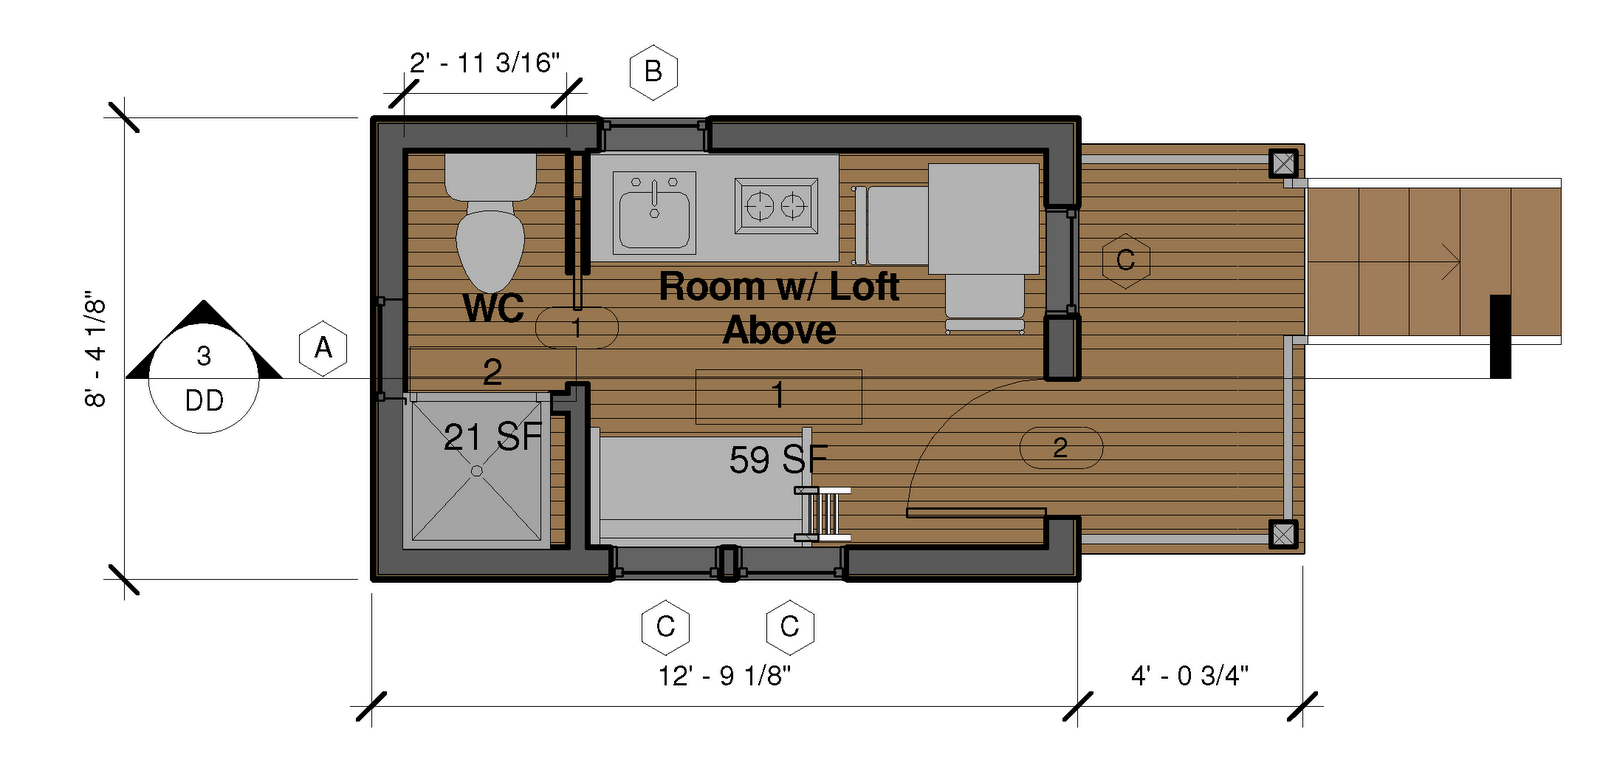 Revit learning club for monday january 24 2011 a tiny for Tiny home floor plans free